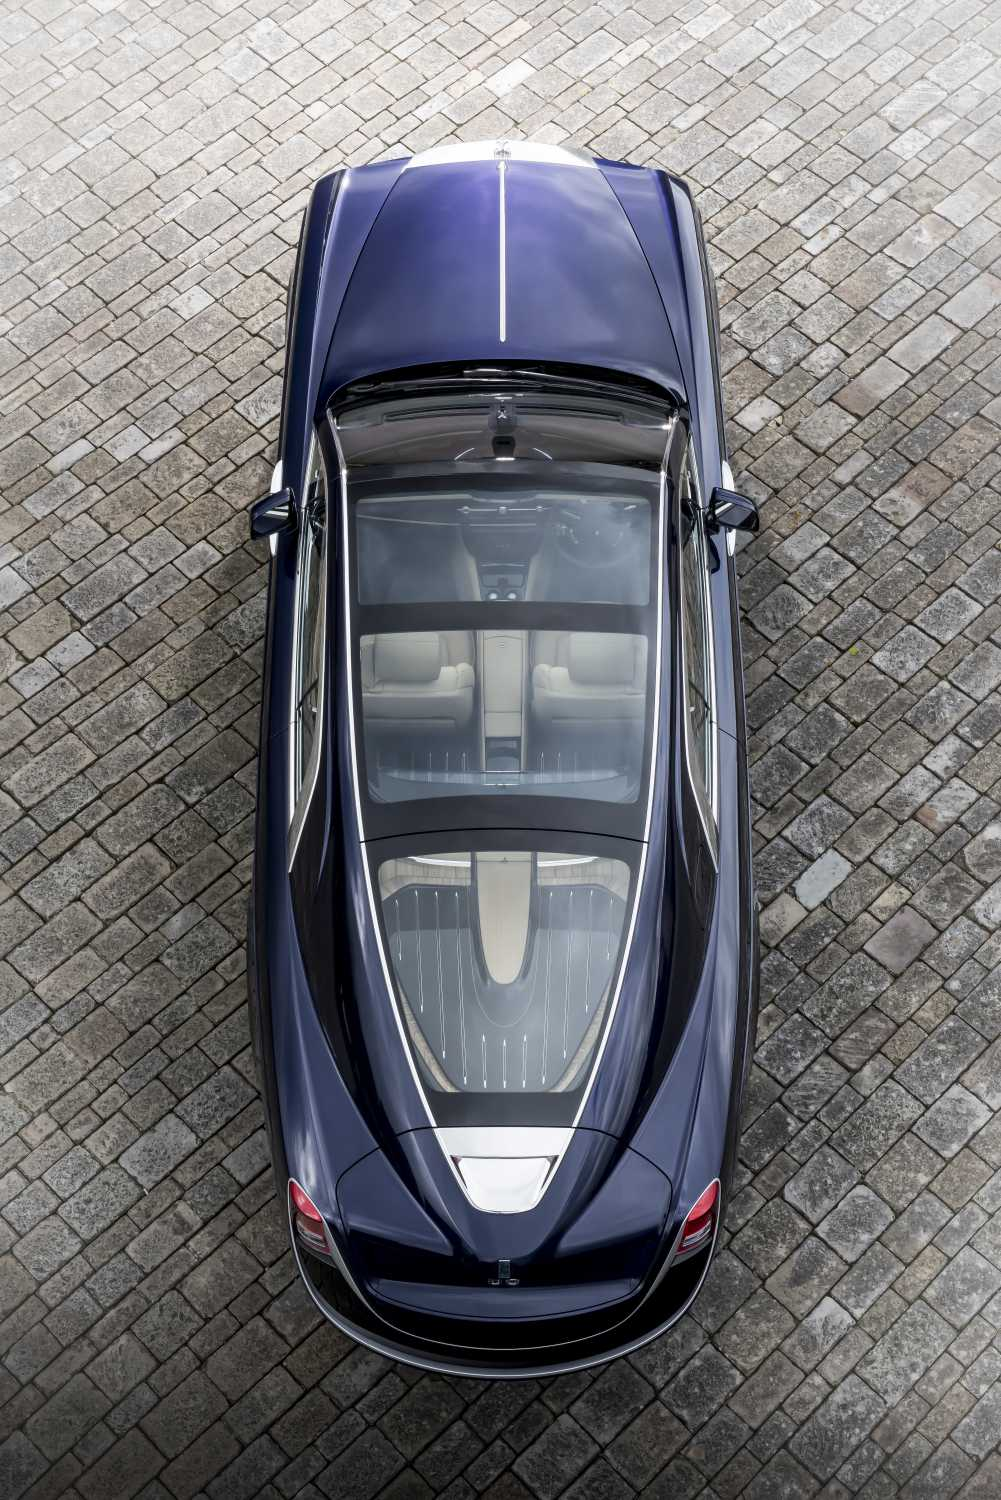 ROLLS ROYCE U0027SWEPTAILu0027 U2013 THE REALISATION OF ONE CUSTOMERu0027S COACHBUILT DREAM